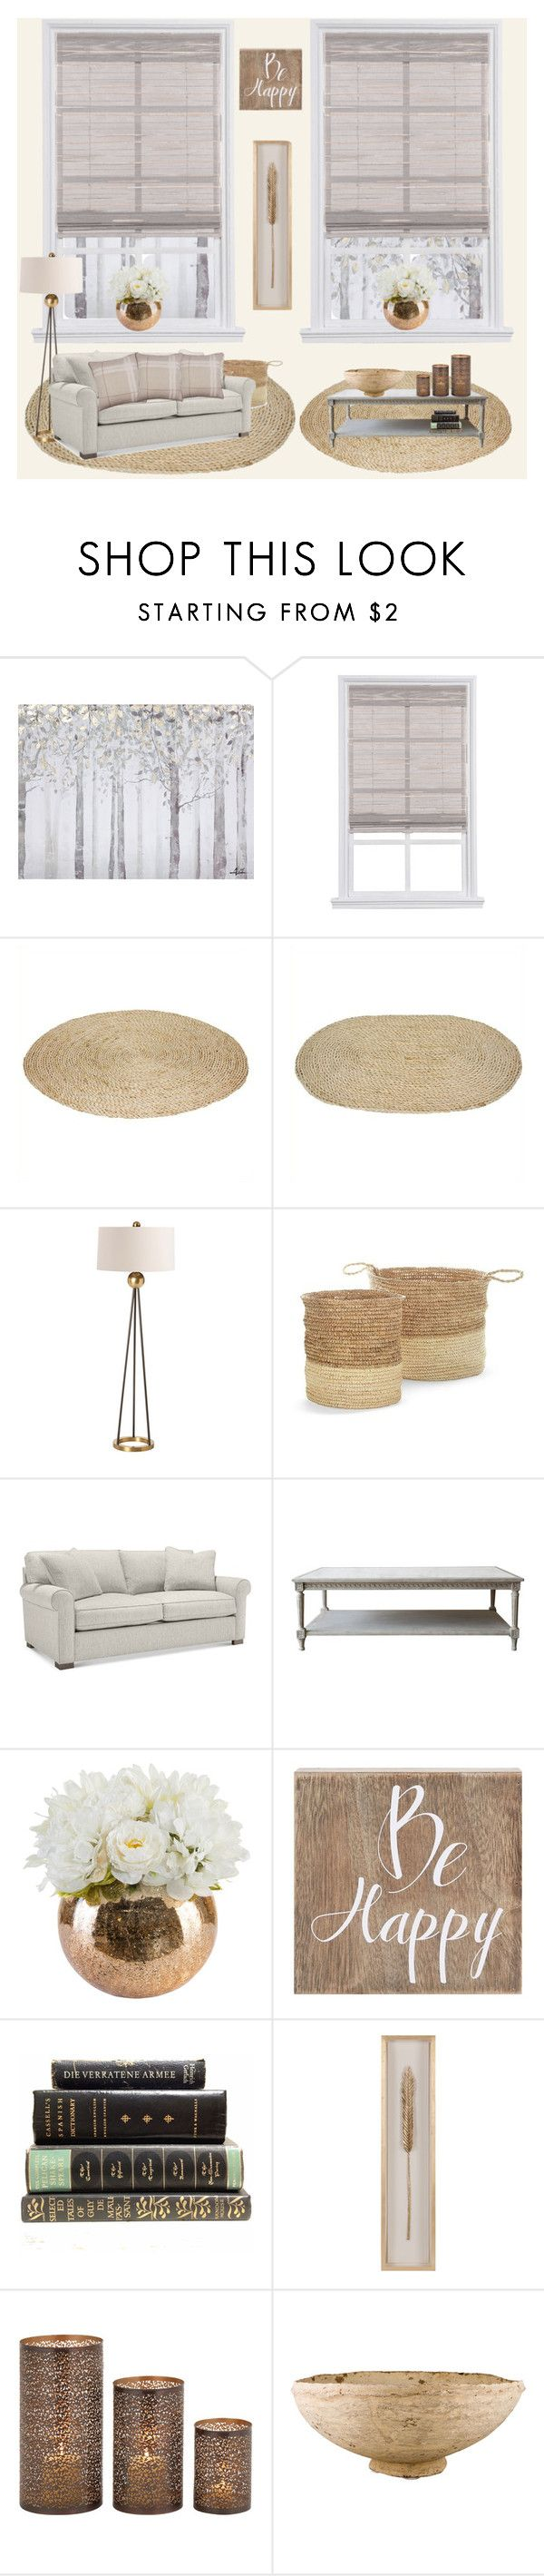 """""""Living room"""" by nadine-b-martin ❤ liked on Polyvore featuring interior, interiors, interior design, home, home decor, interior decorating, Yosemite Home Décor, Arteriors, Pottery Barn and Belle Maison"""